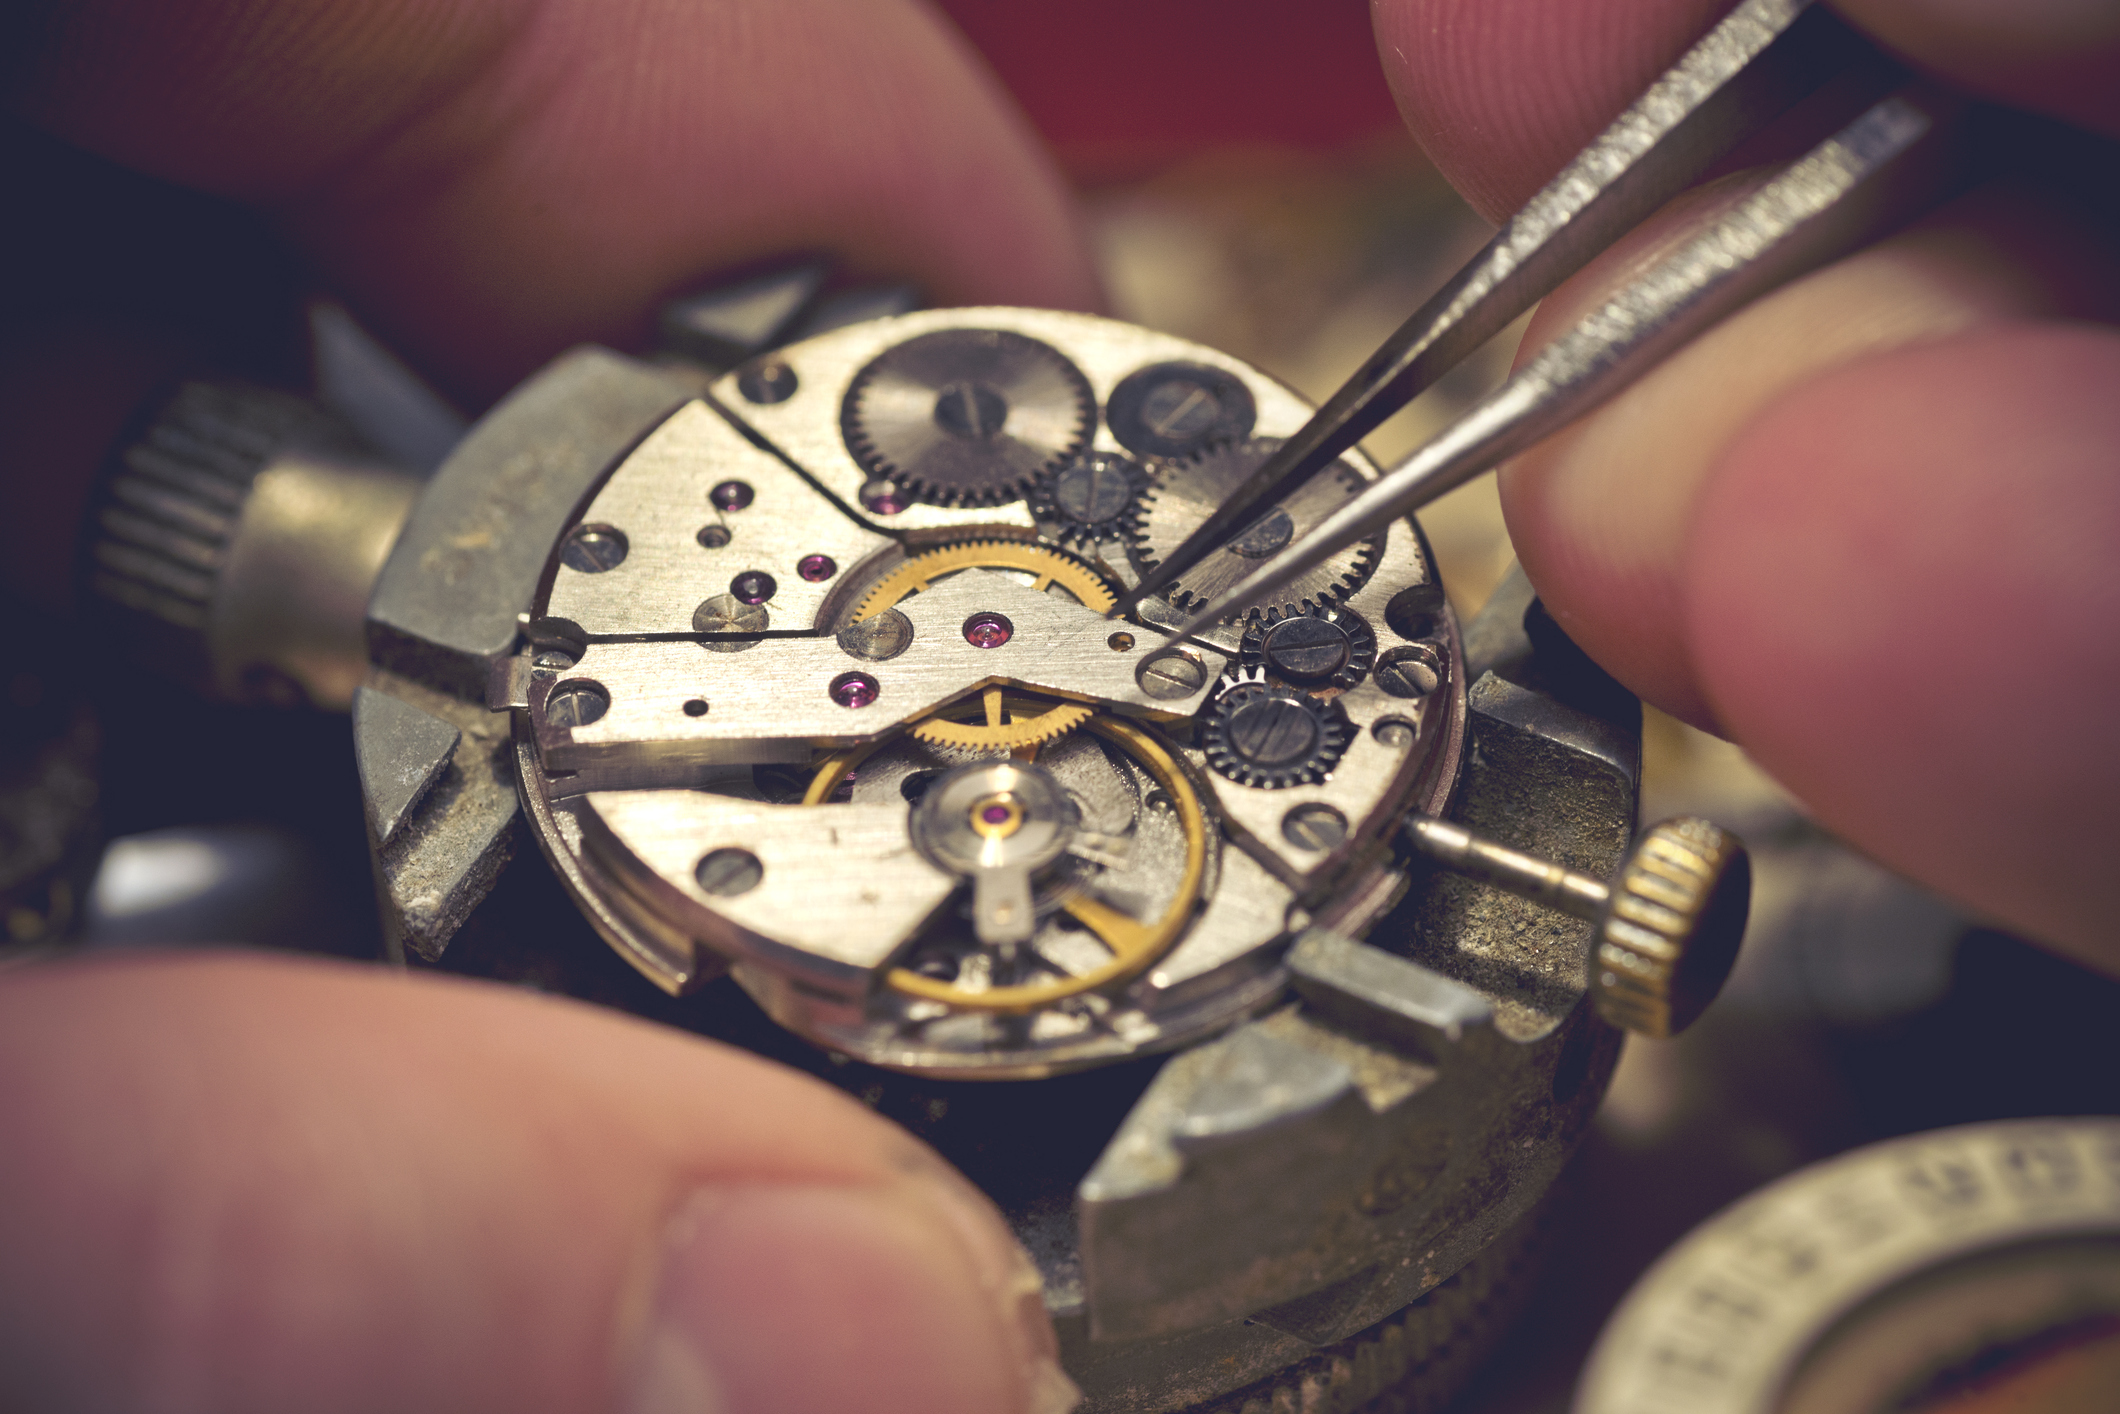 Watch Repair - Repairs done by master watchmaker with over 50 years of experience.